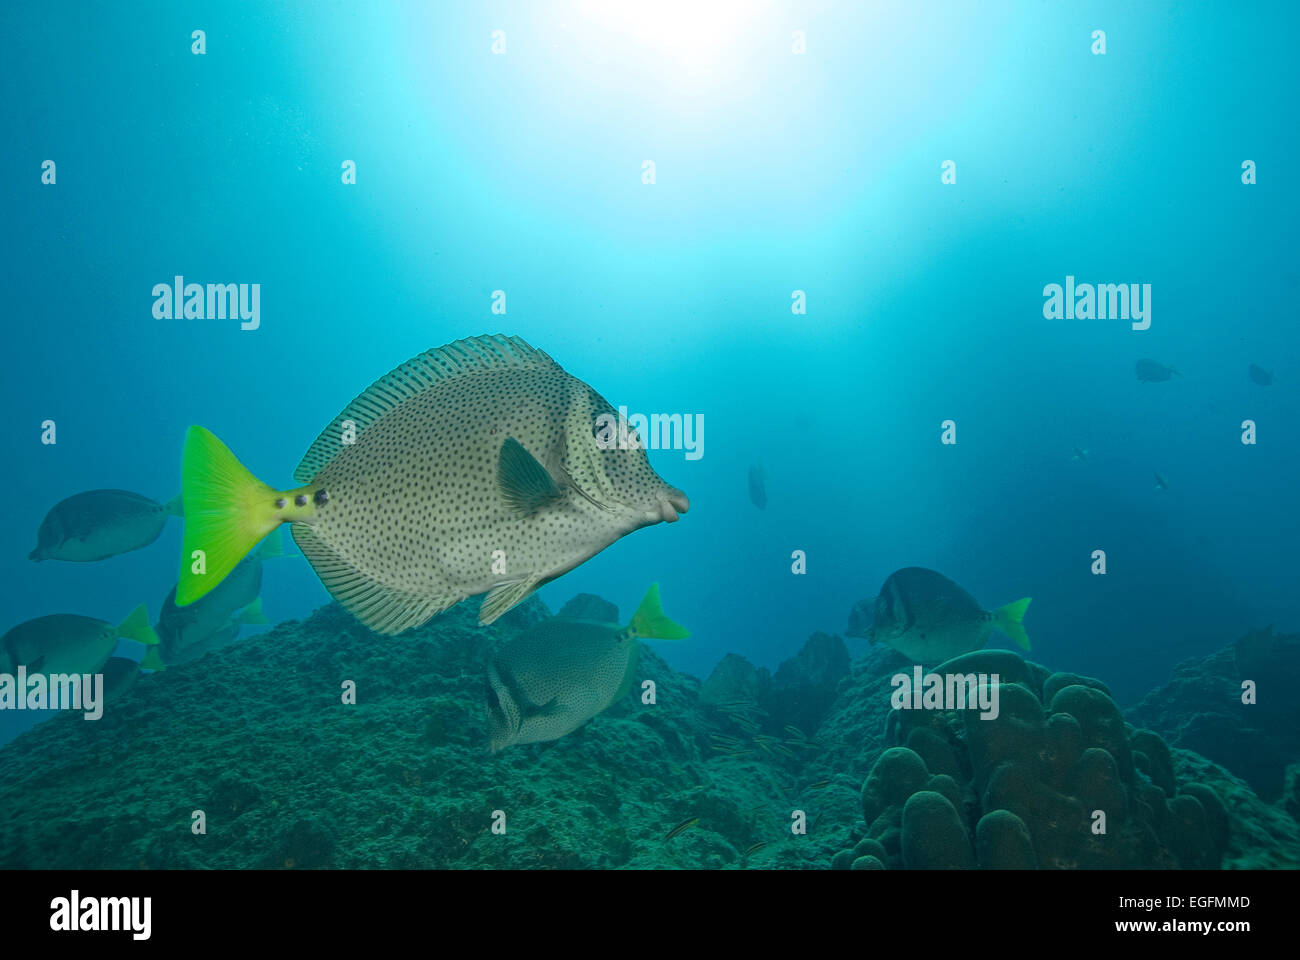 Tropical fish at Cabo San Lucas, Mexico Coral Reef Stock Photo